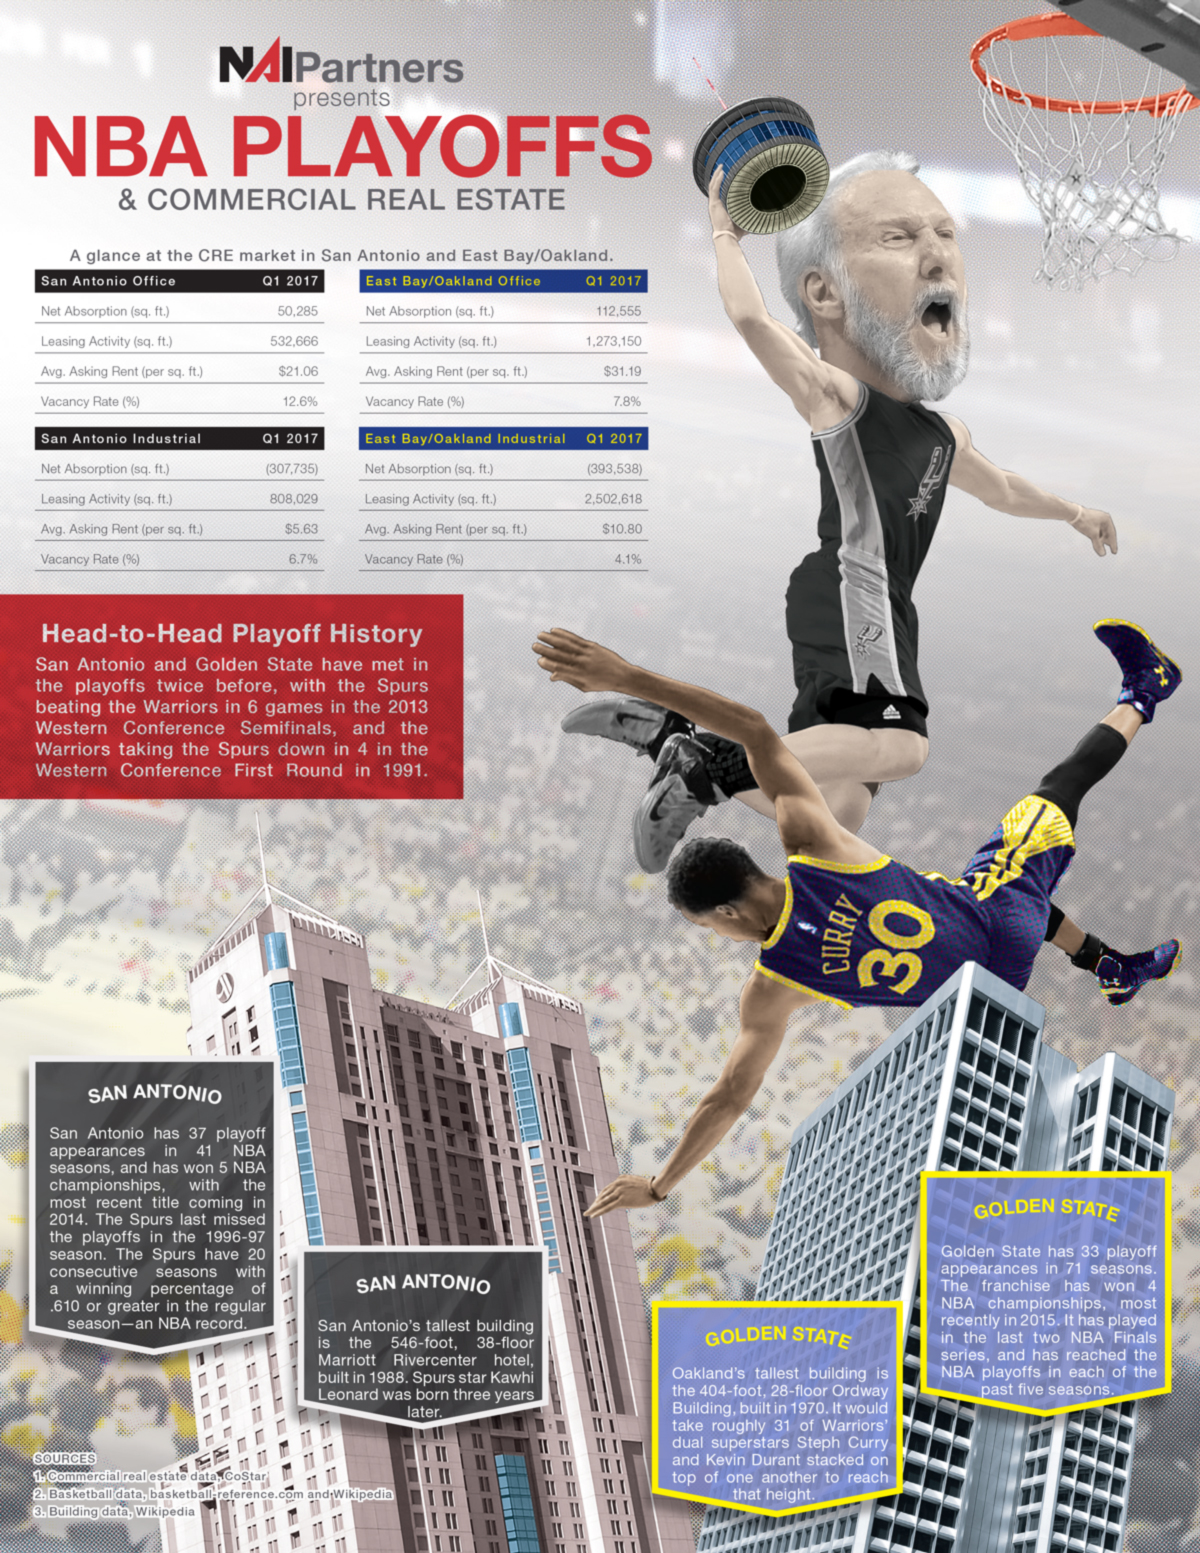 NBA Playoffs and Commercial Real Estate San Antonio Spurs vs. Golden Stat Warriors East Bay San Fransisco and Oakland